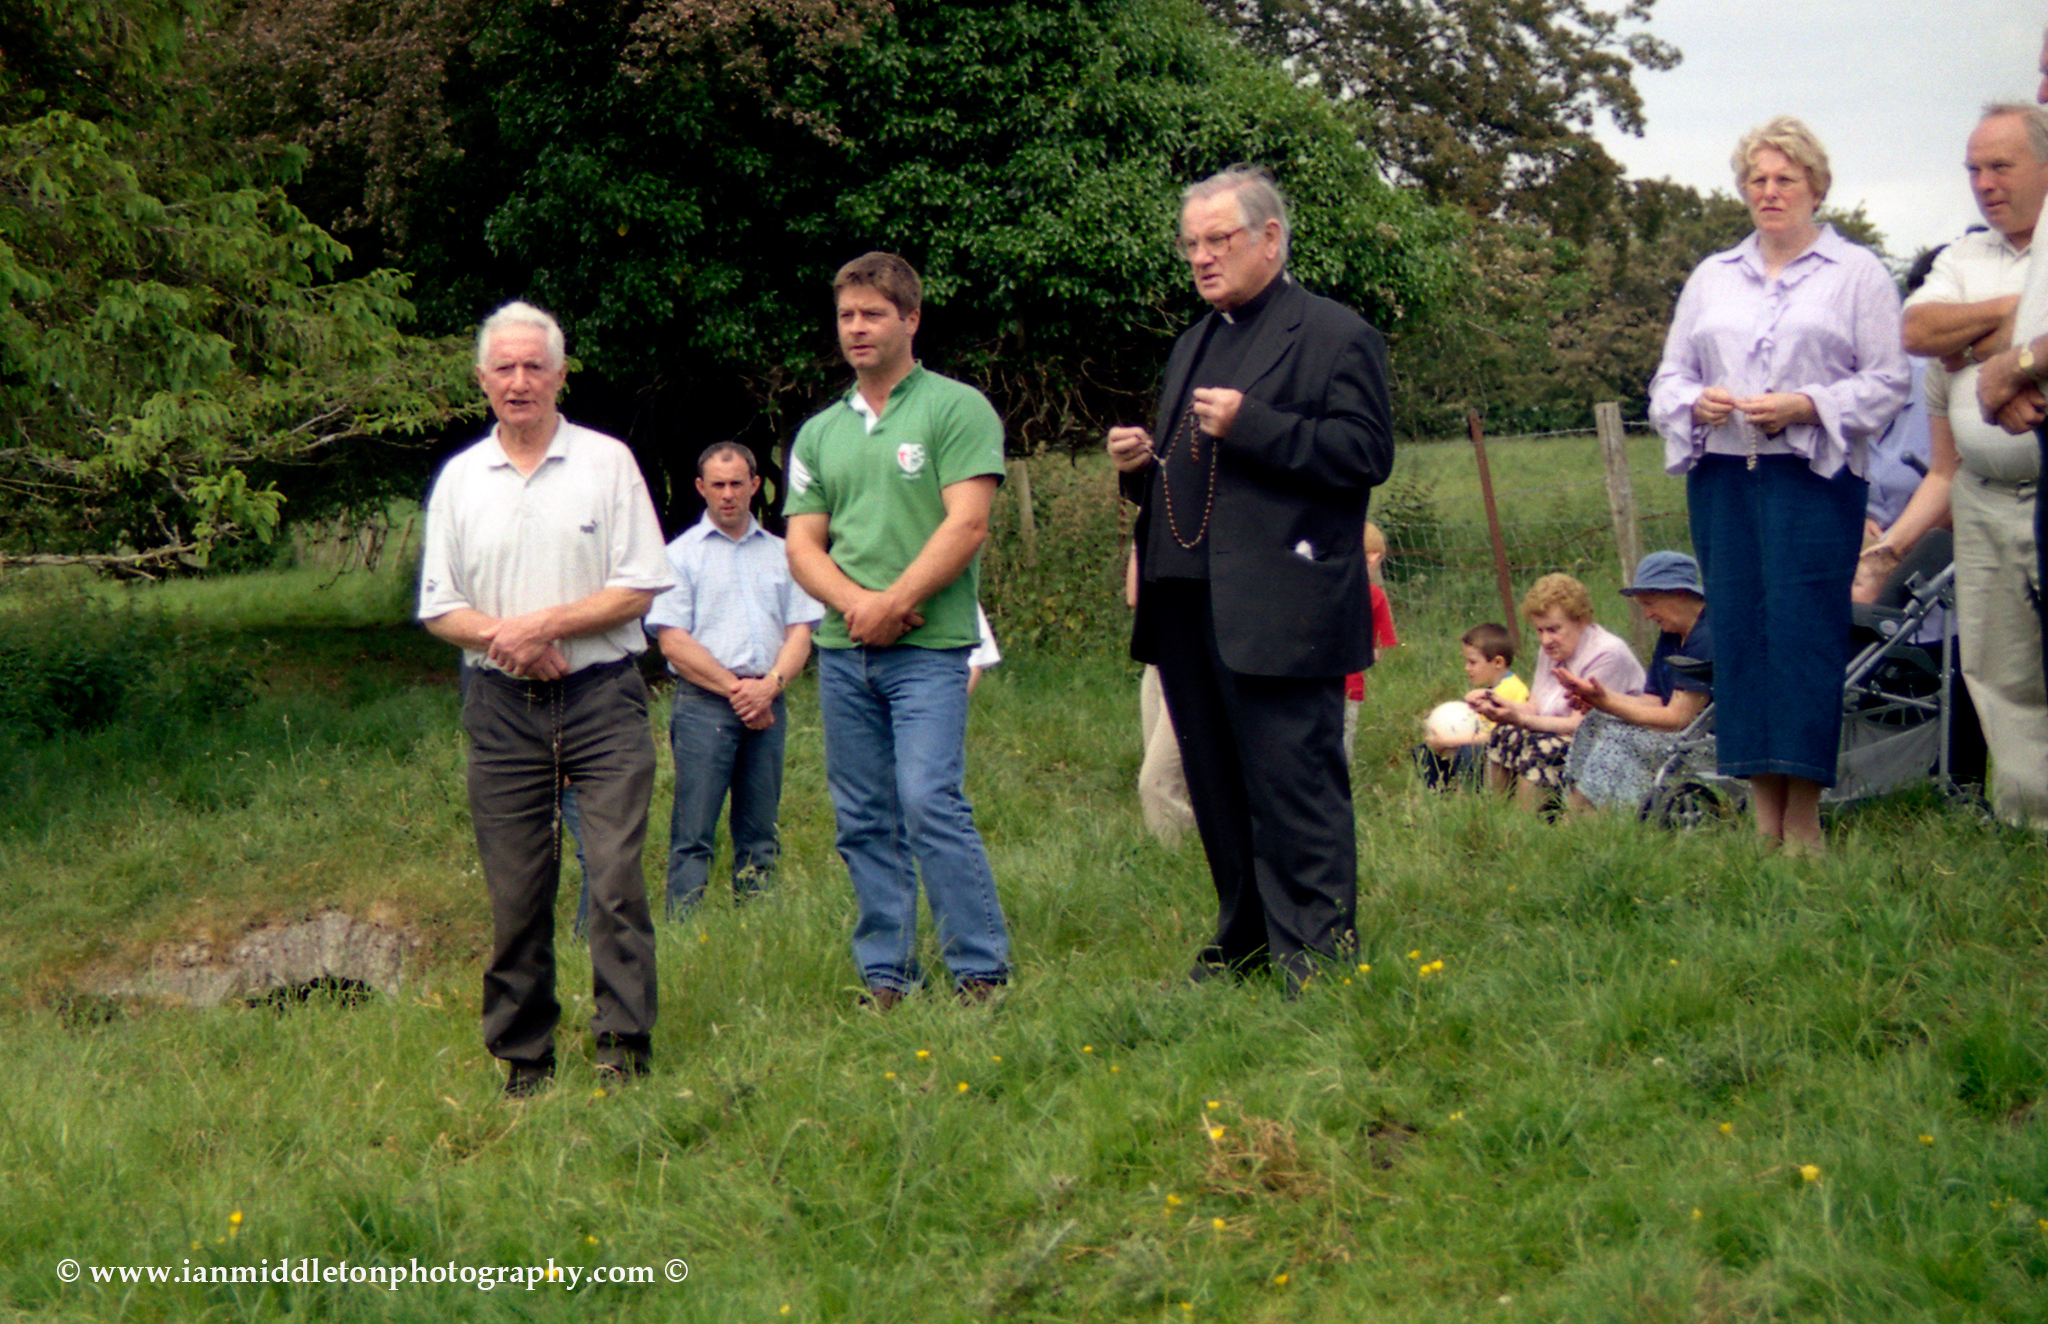 The annual Rosary at Trinity Well, in the grounds of Newberry House, near the village of Carbury, County Kildare, Ireland.